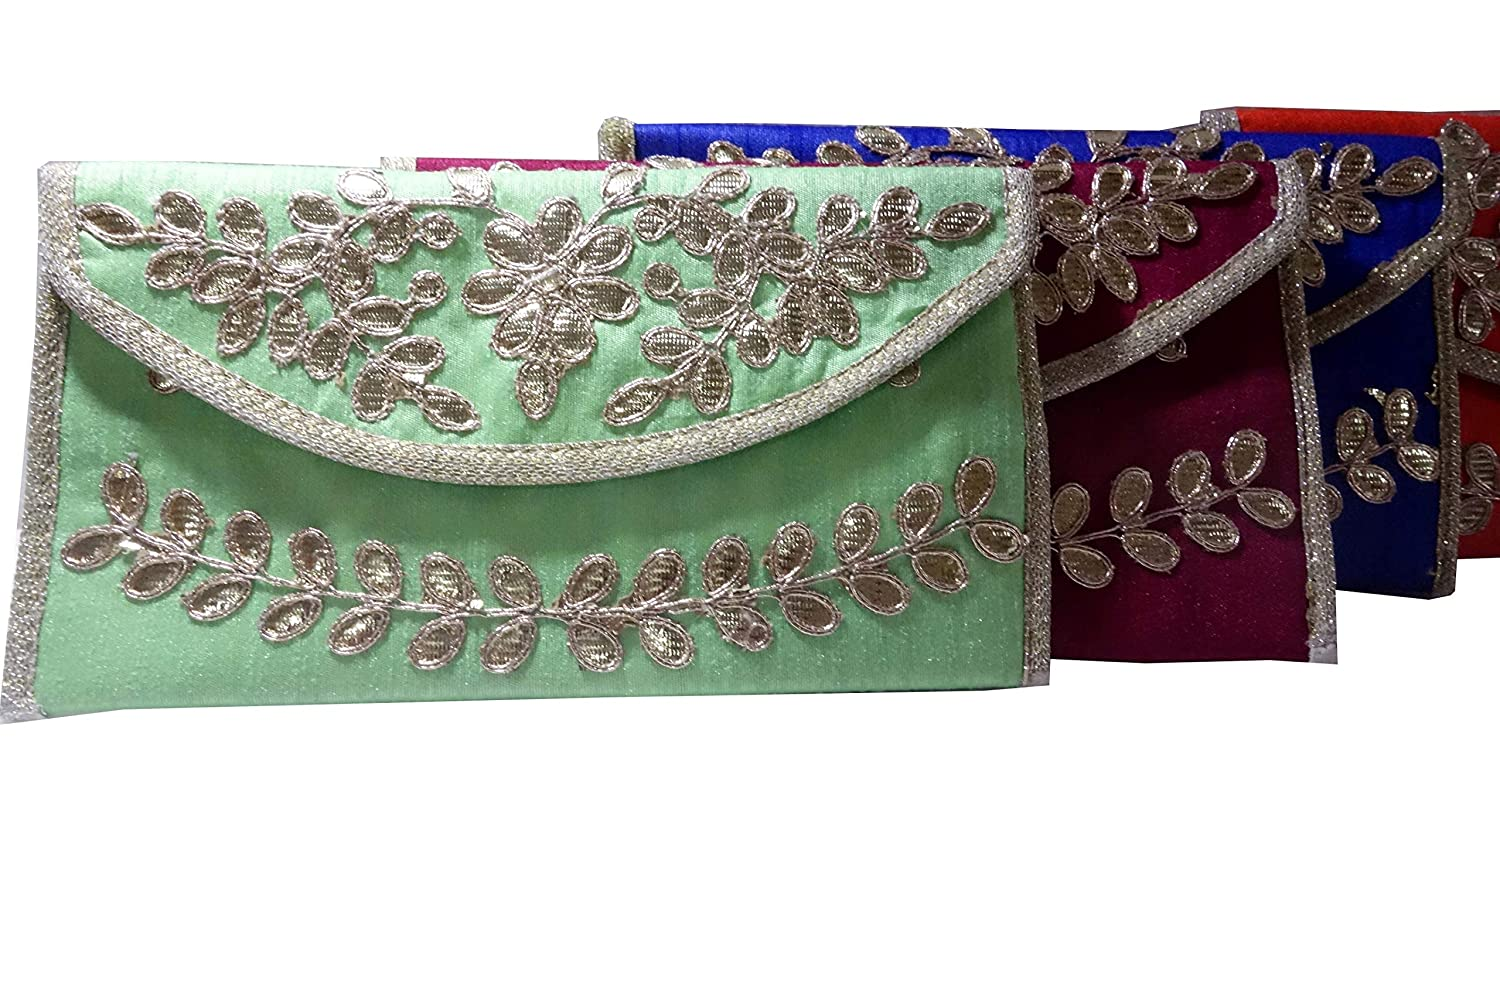 - Indian Wholesale 100 pc lot Bulk Mandala Hand Bag Ethnic Clutches Purse Shoulder for Ladies by Panchal Creation-11